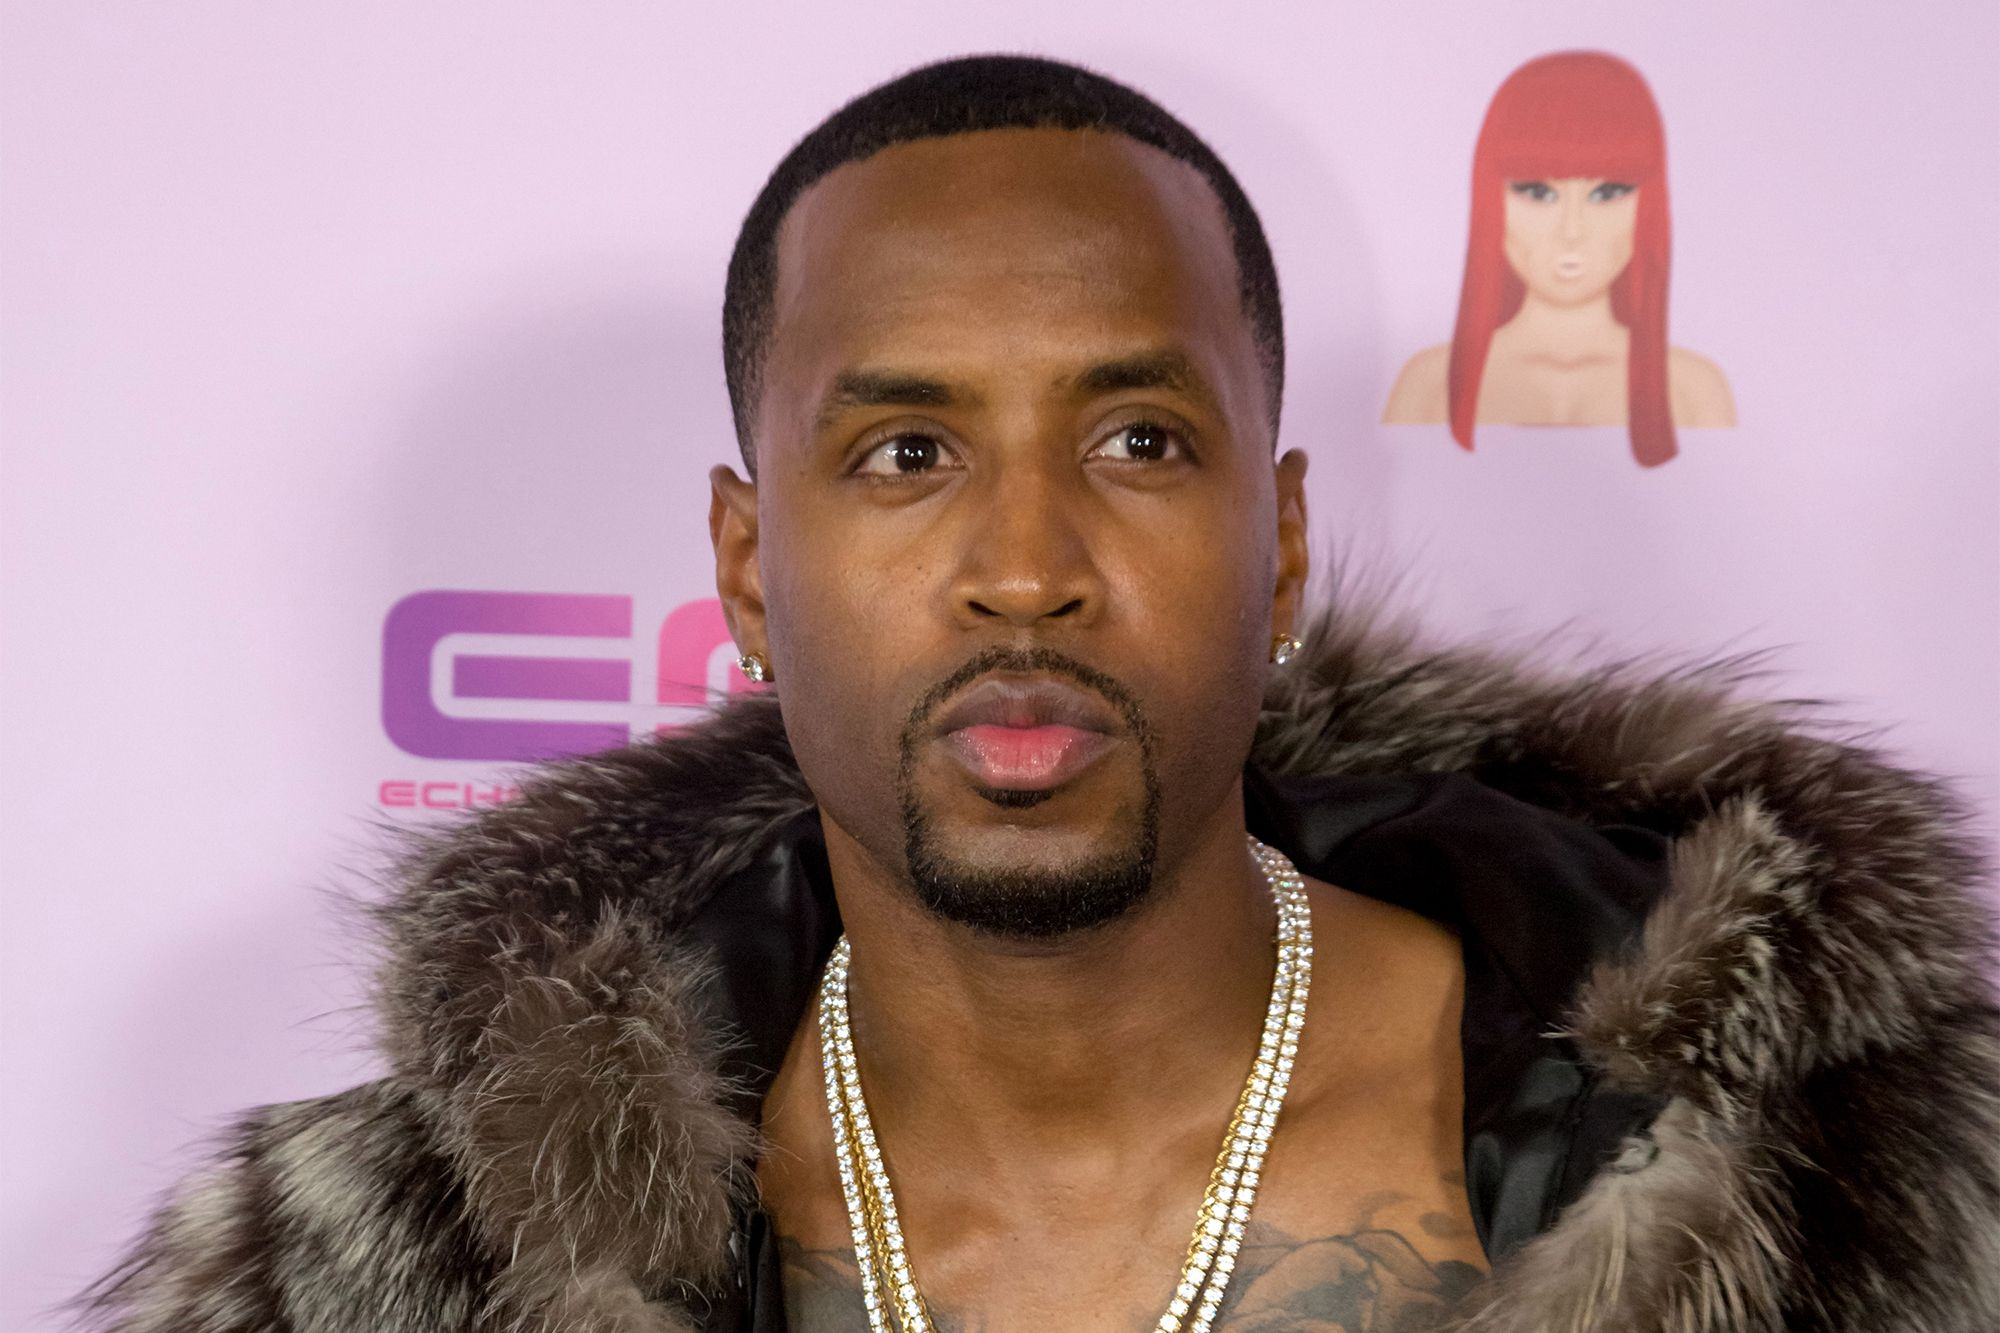 safaree-teaches-fans-about-trading-and-building-digital-assets